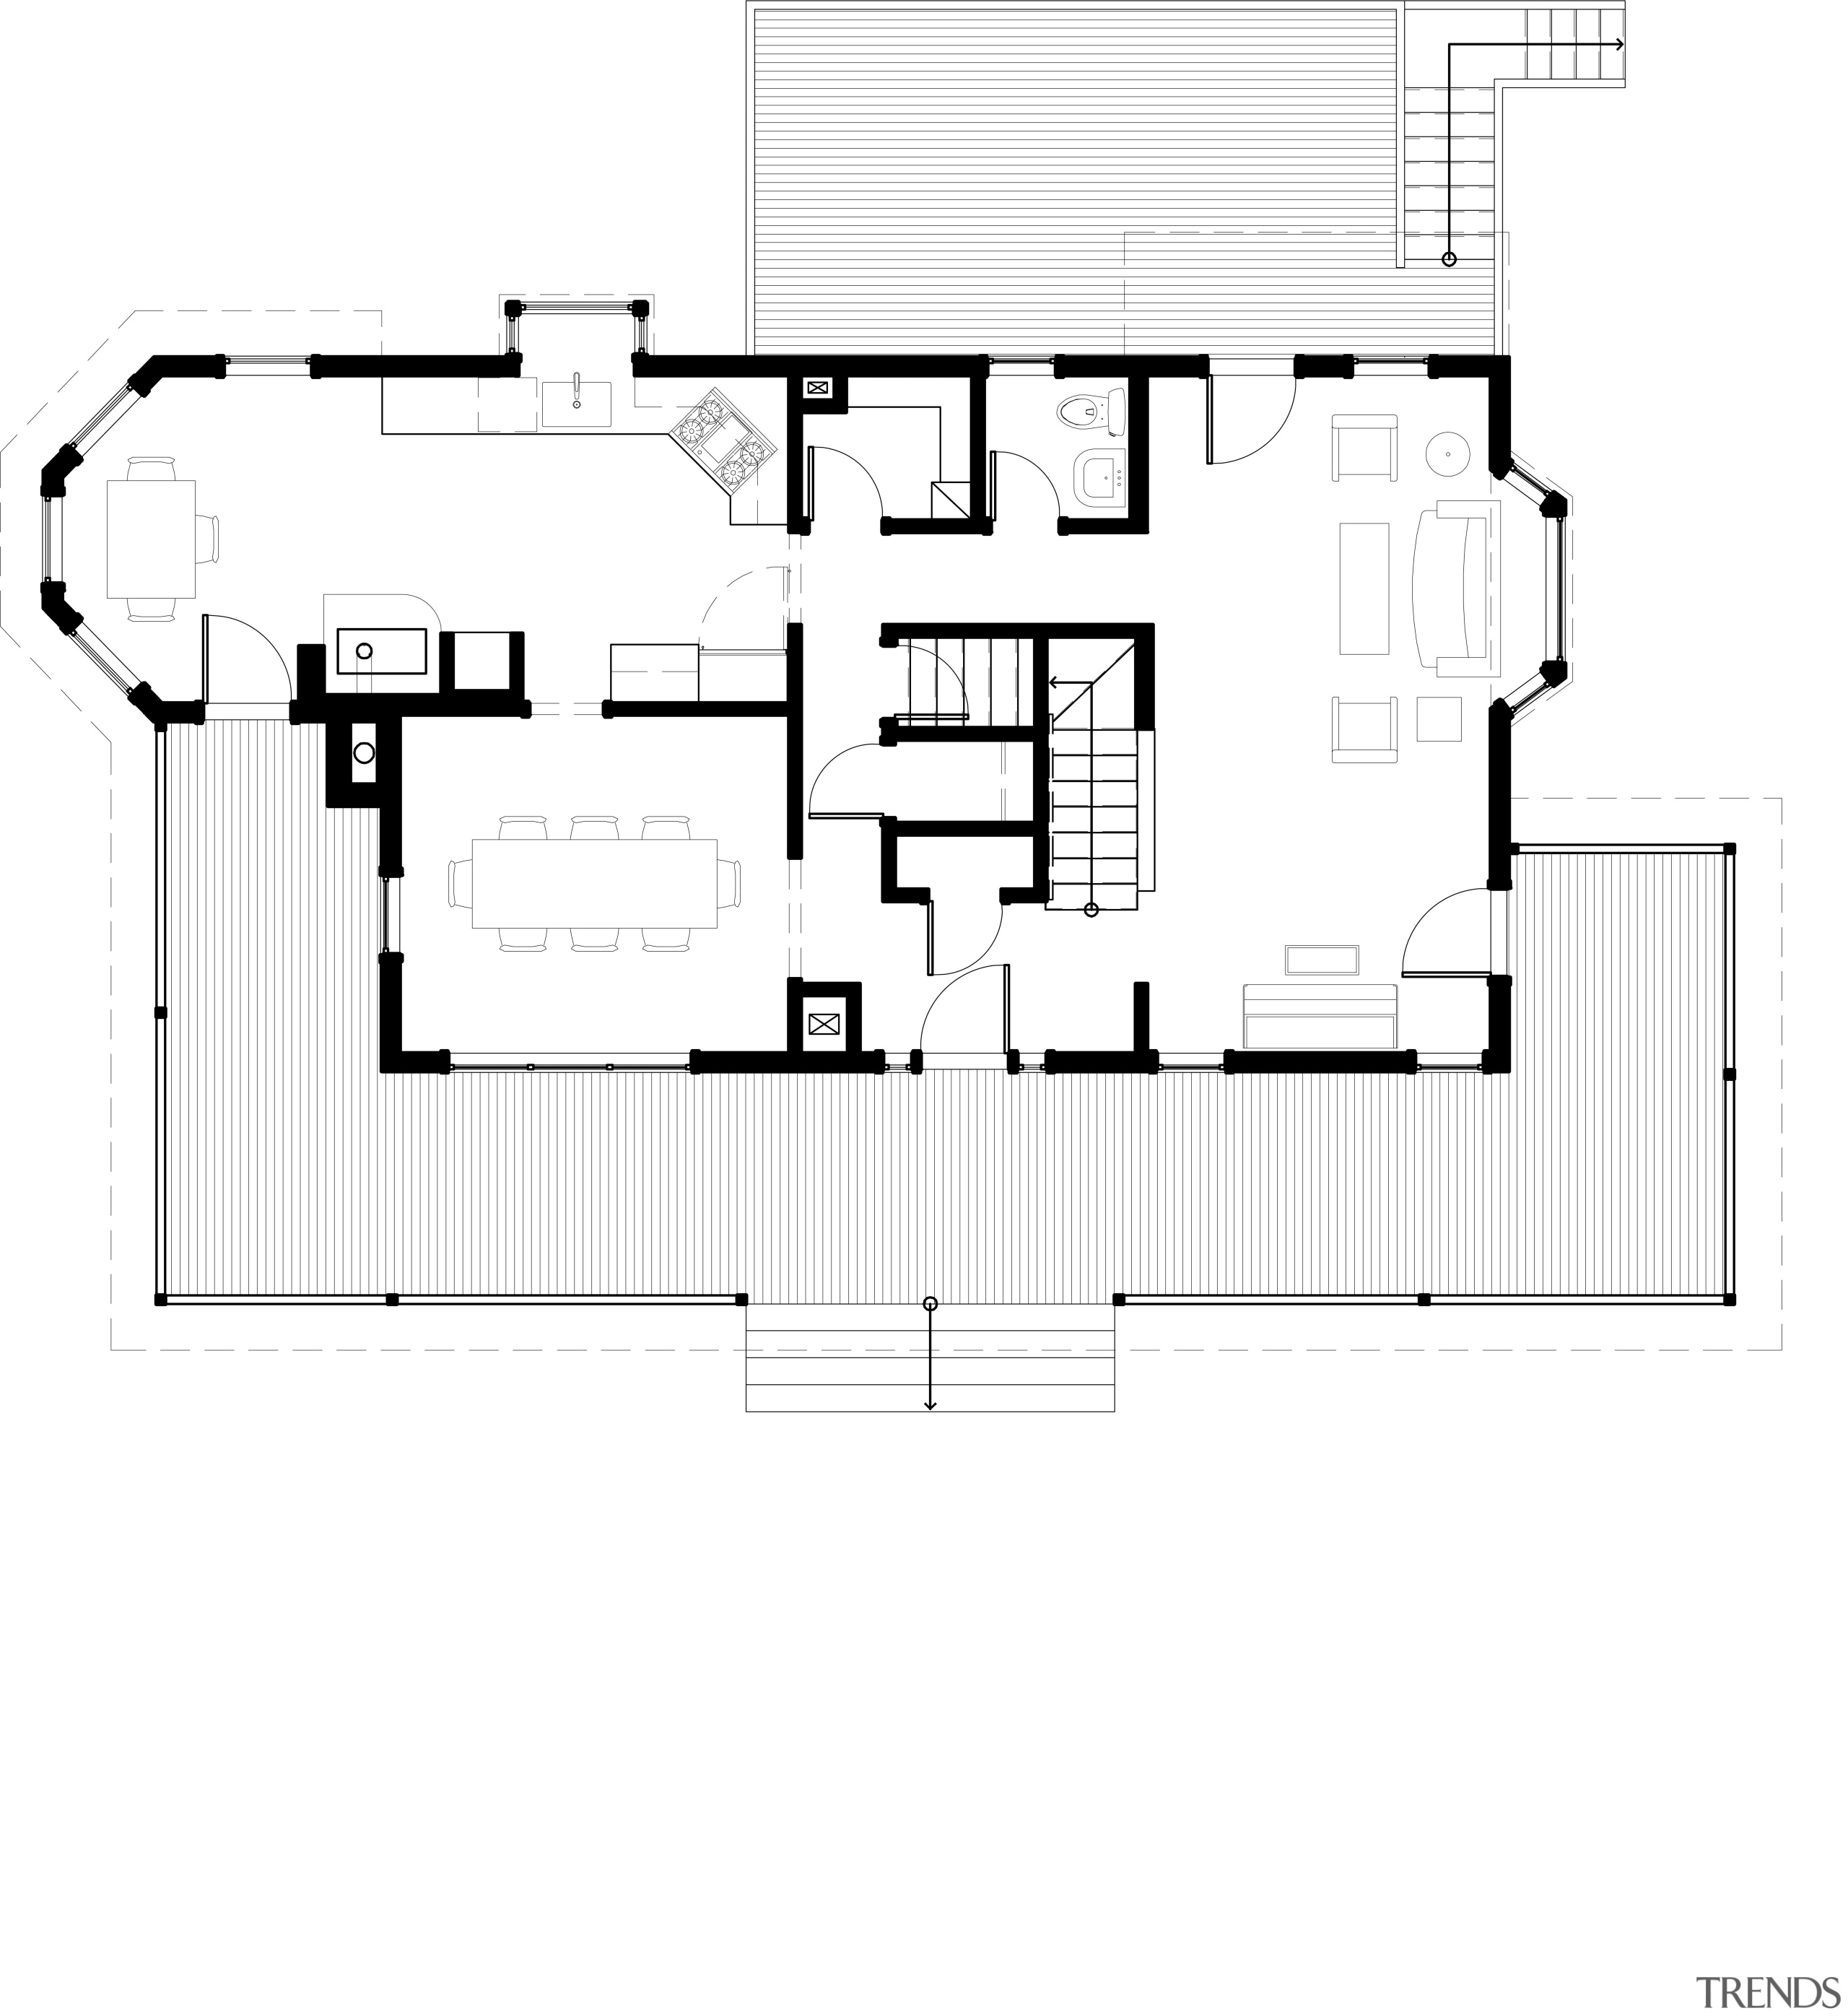 This home and kitchen was designed by Finne angle, architecture, area, design, diagram, drawing, elevation, floor plan, font, line, plan, product, product design, structure, text, white